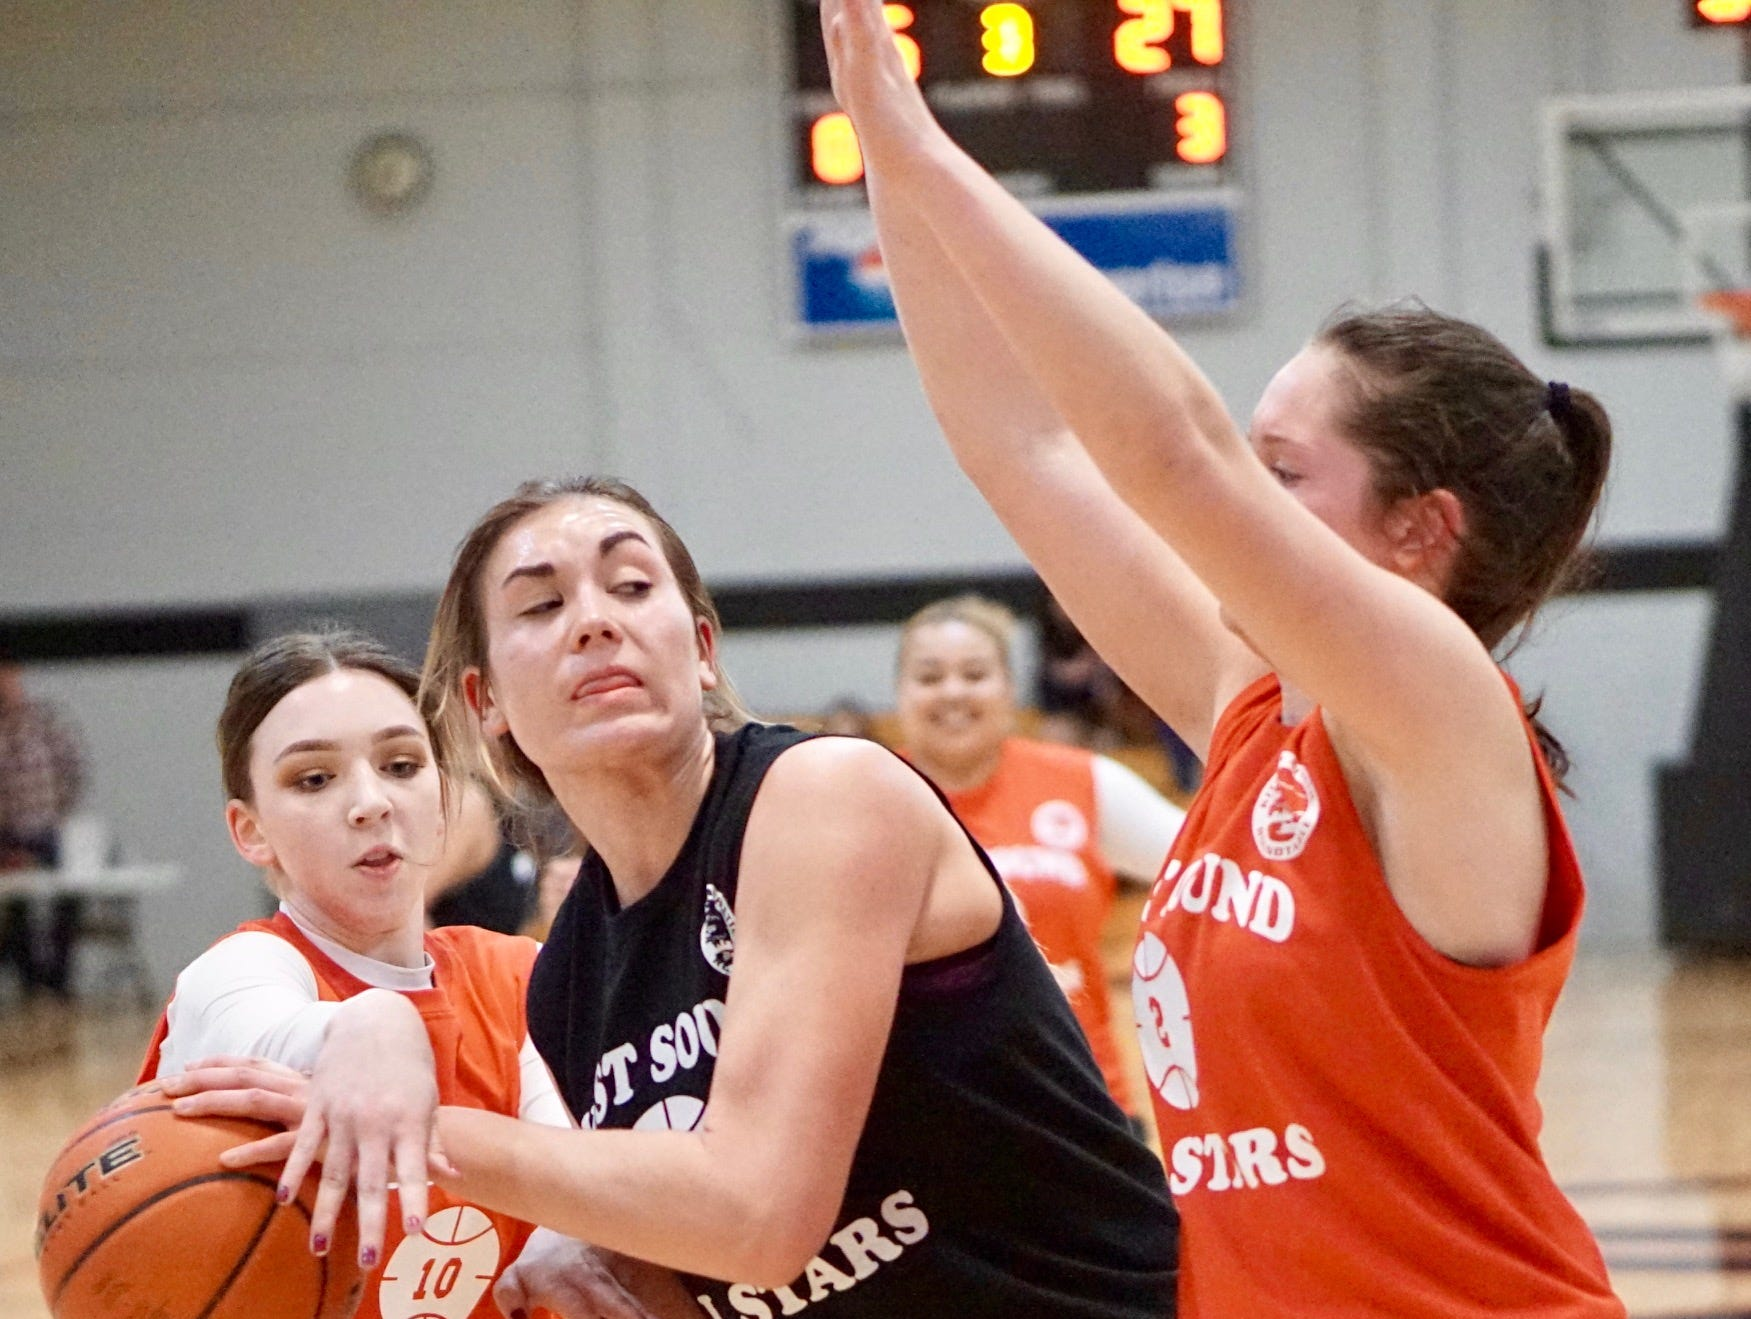 North Kitsap's Maddie Purden tries to make a pass during Tuesday's West Sound Senior High School All-Star Basketball Games at Olympic College.